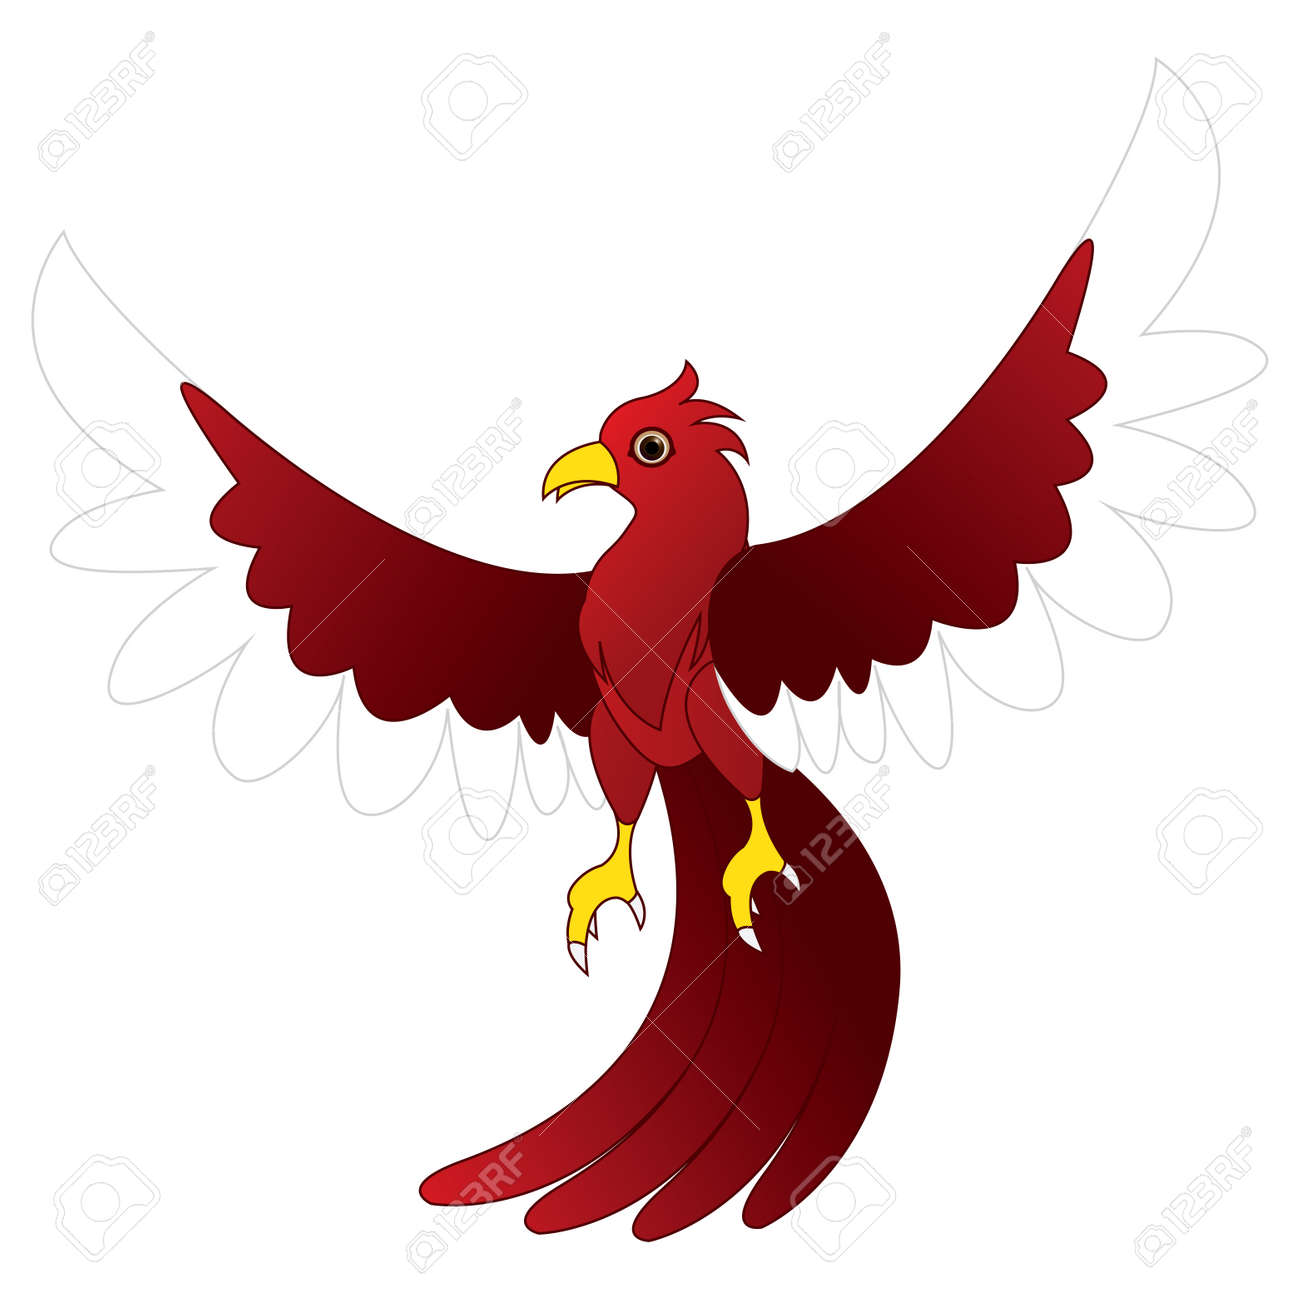 character red bird Stock Vector - 20888143